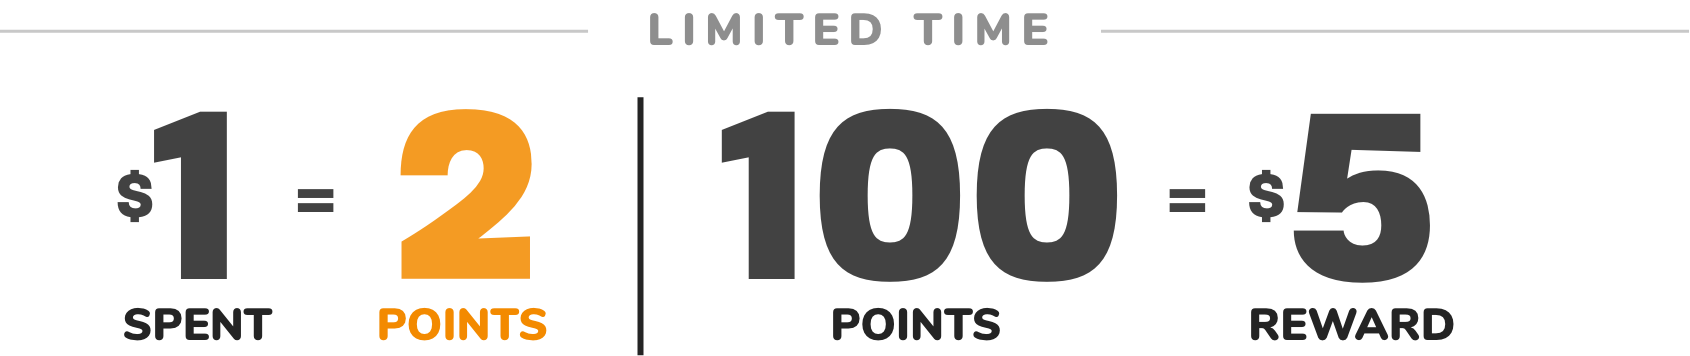 DOUBLE POINTS | LIMITED TIME